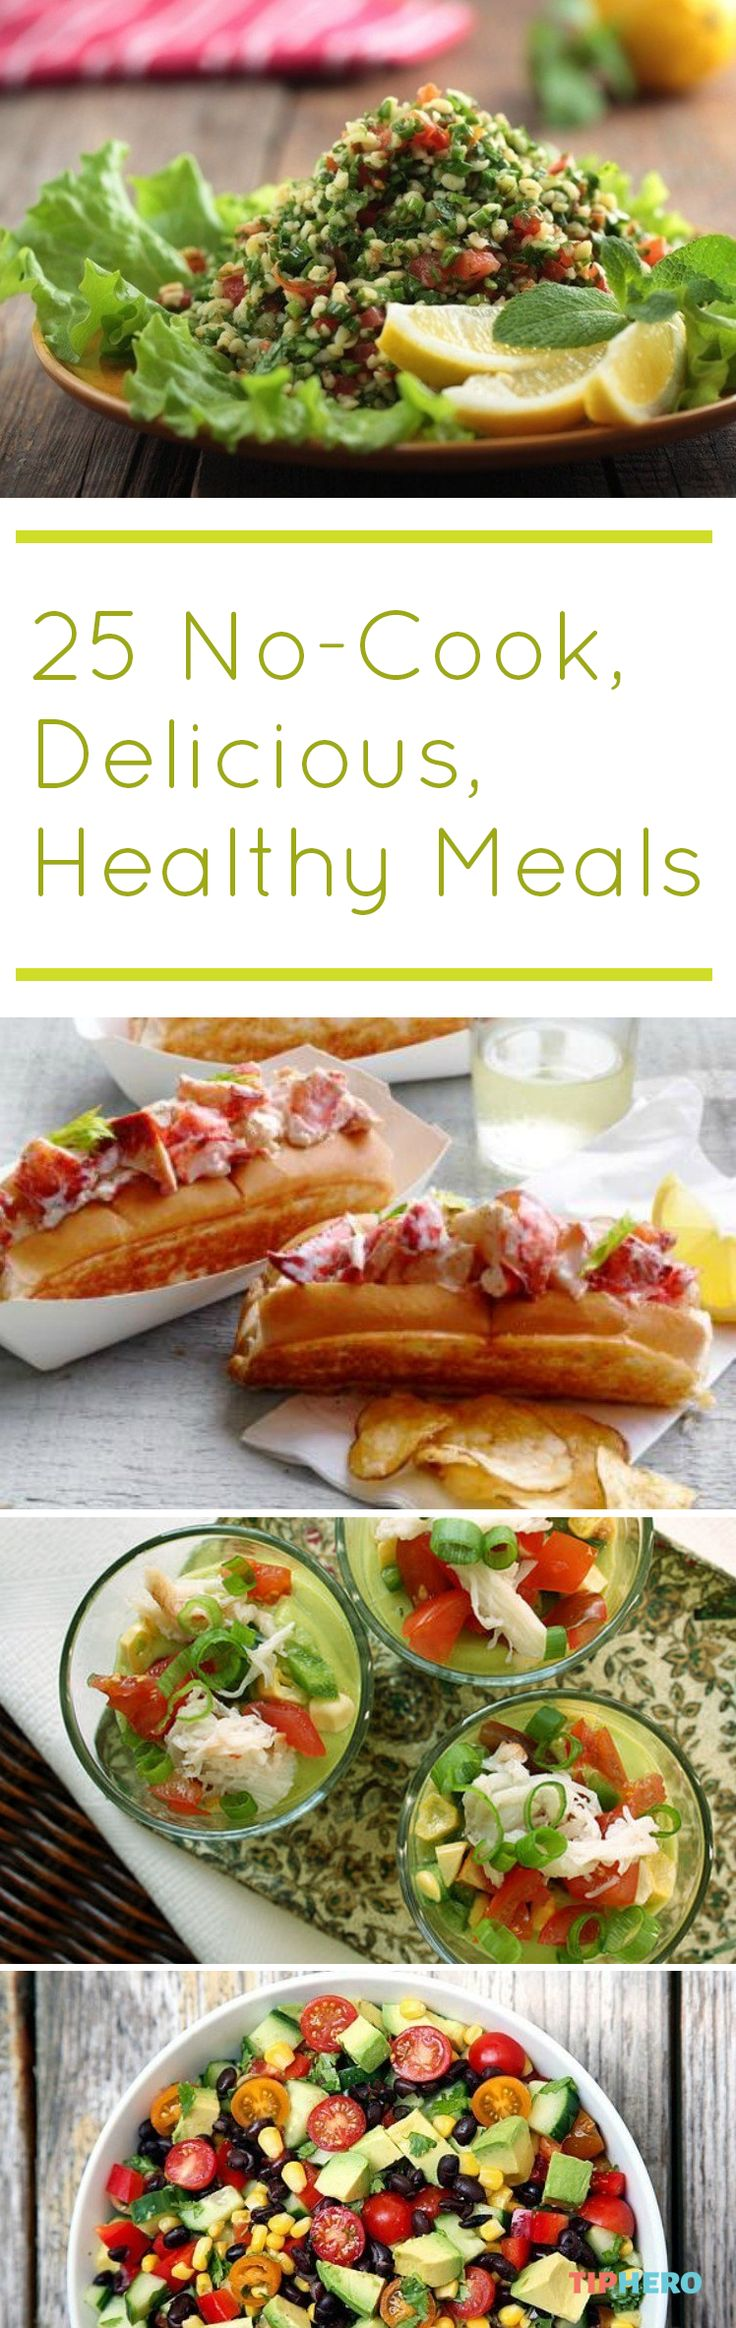 25 No-cook, Delicious, Healthy Meals |It's summertime and we are in search of easy meals that don't require an over! Here's our top 25. What's your favorite no-cook meal? Click for the recipes.  #dinnertime #familydinner #healthyrecipes #healthymeals #easymeals